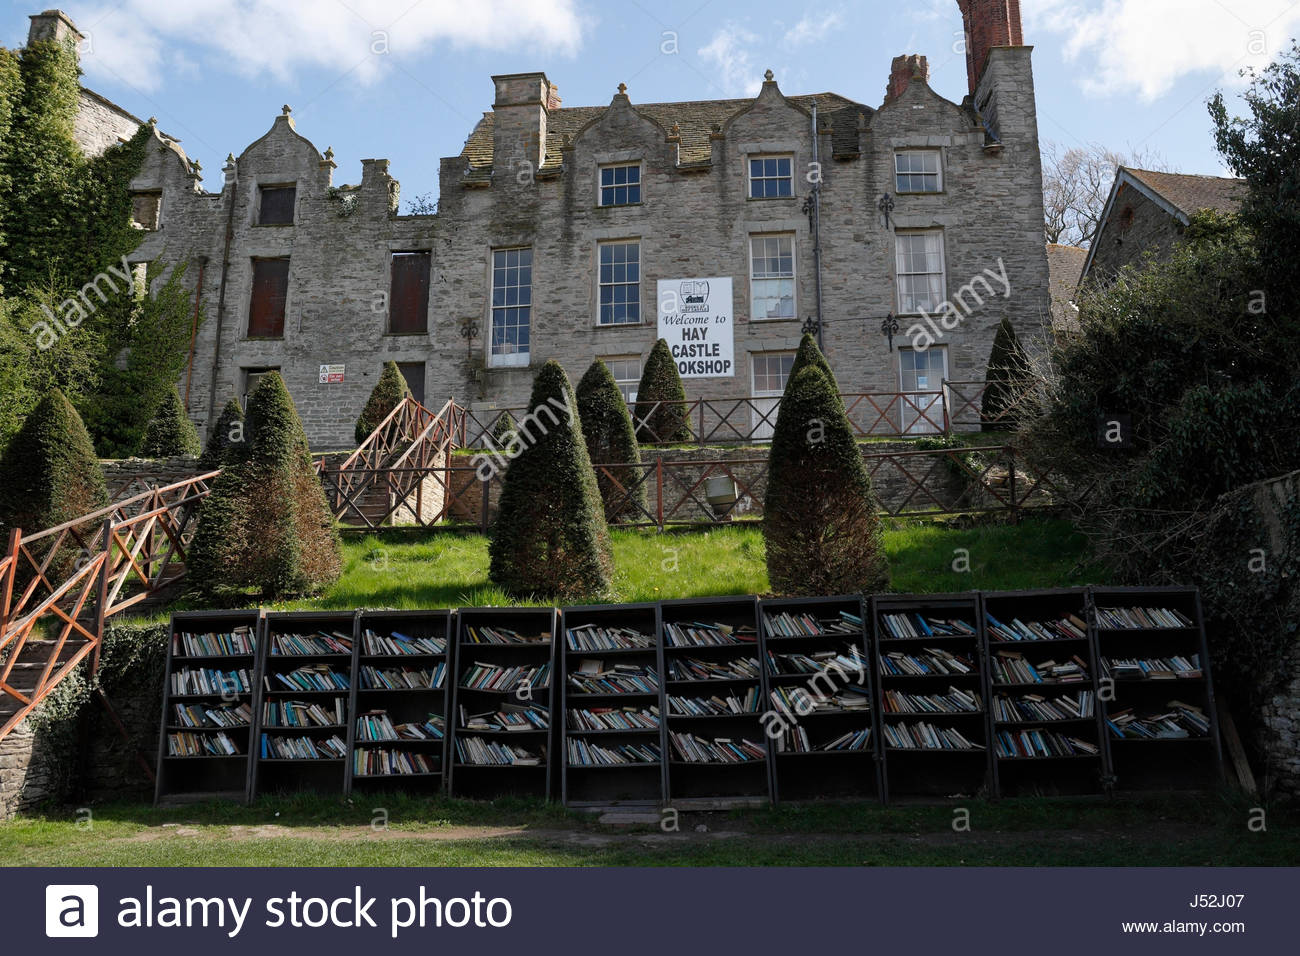 Hay Castle Mid-Wales, The castle bookshop in Hay on Wye Powys Mid Wales Stock Photo ...